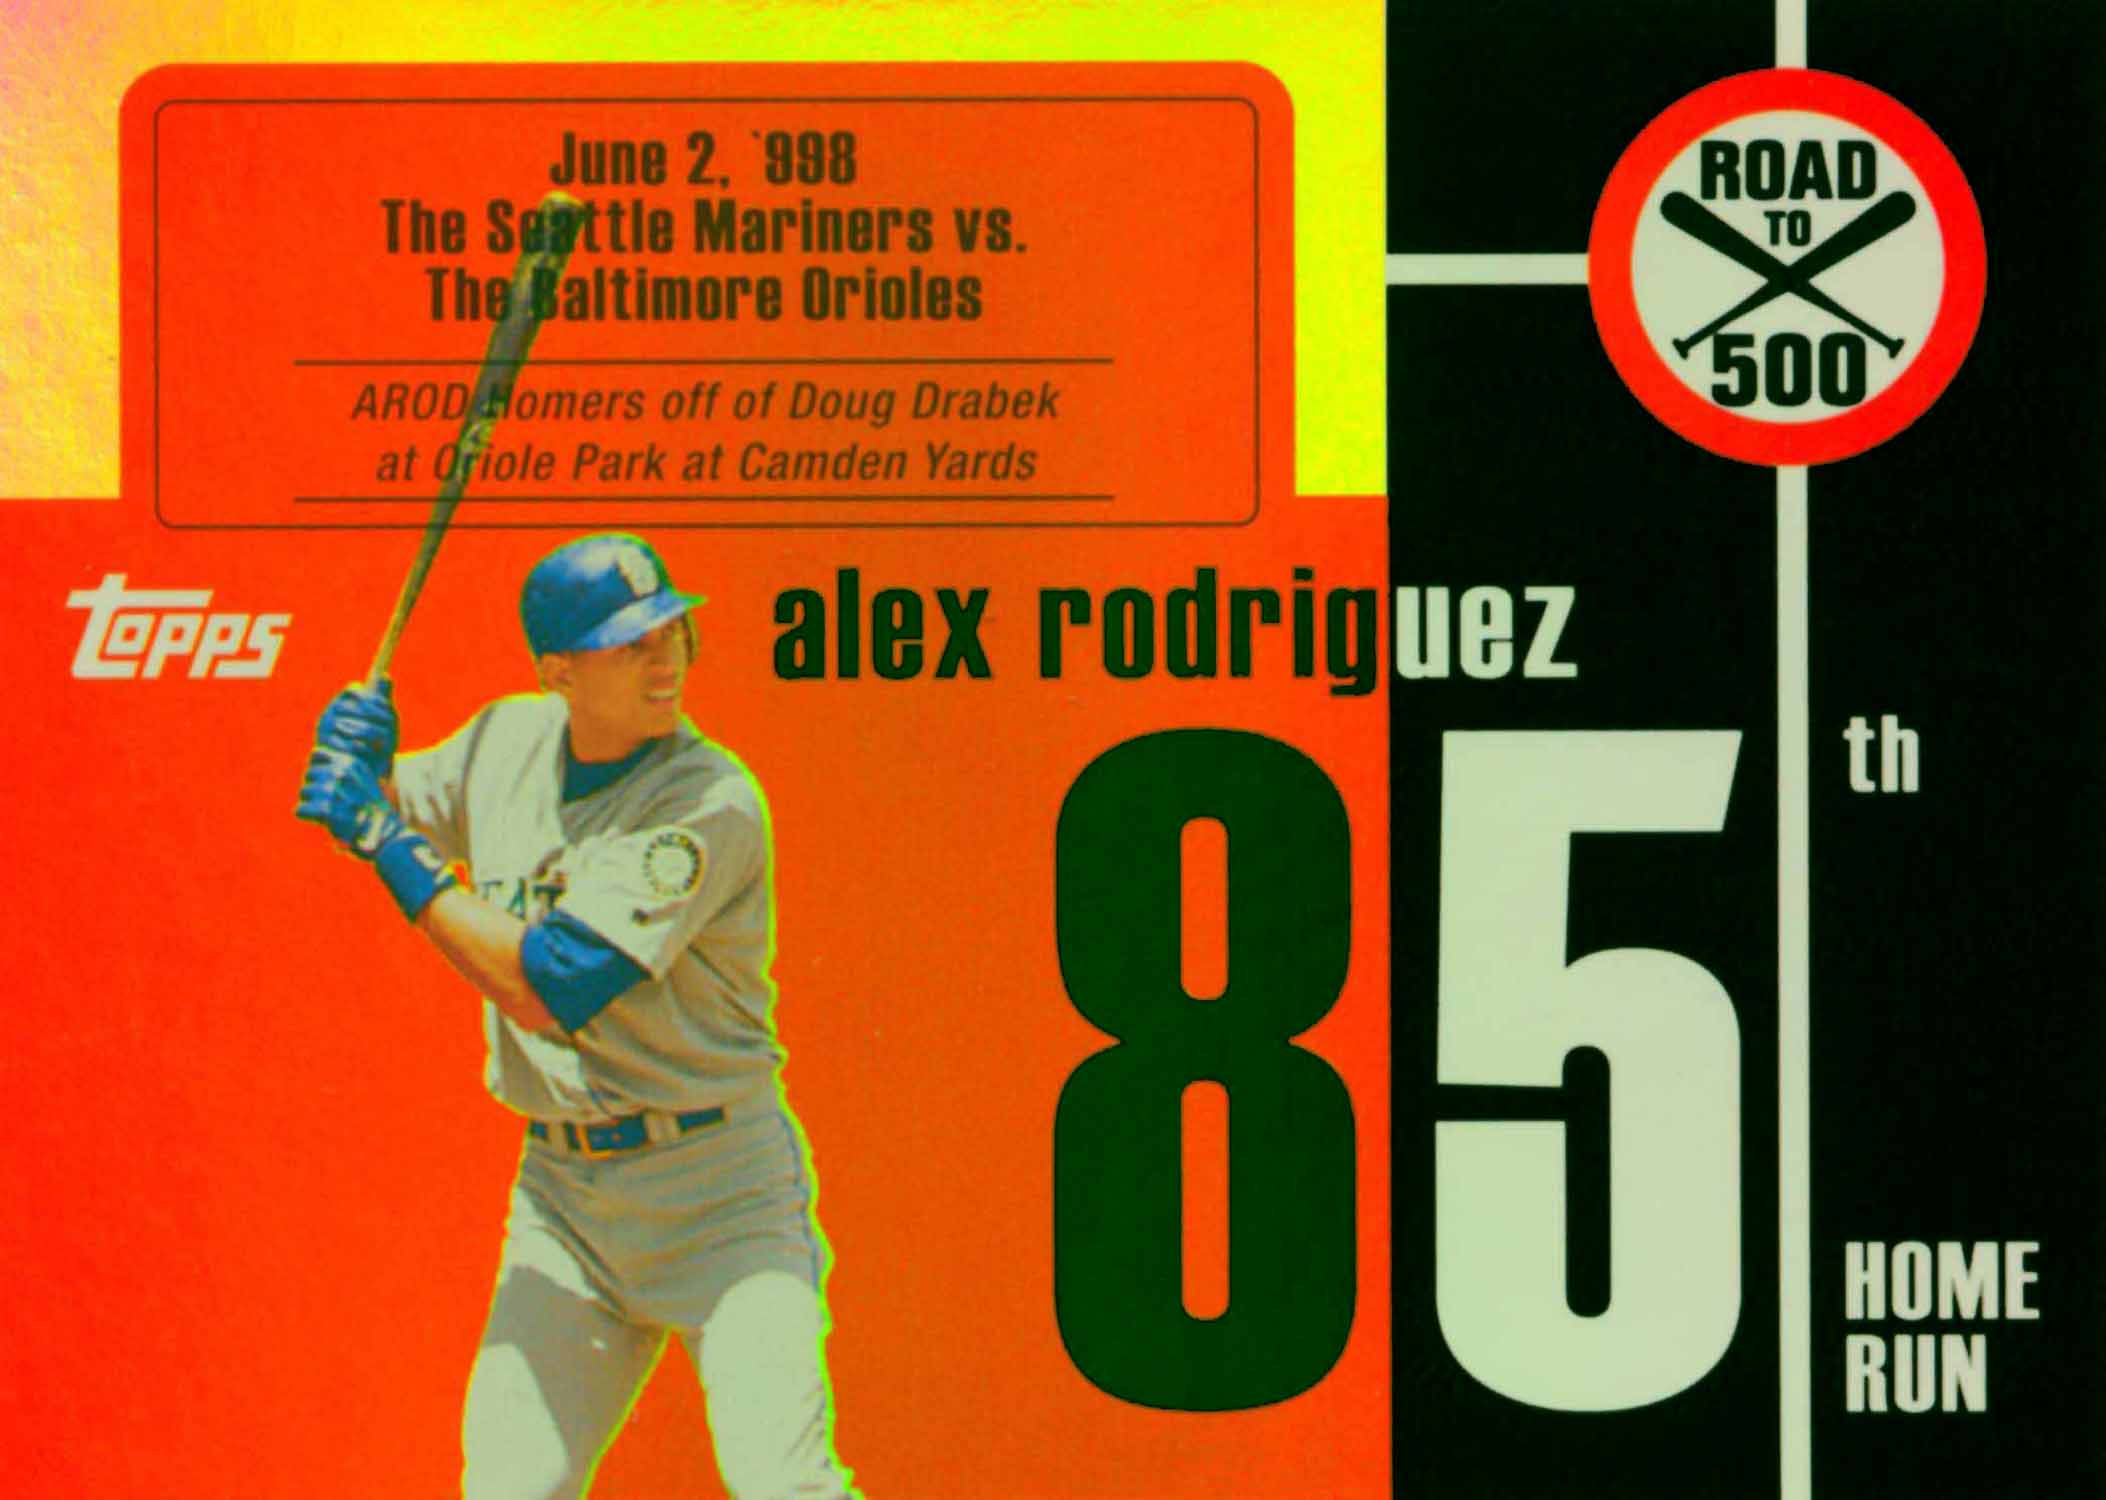 2007 Topps Alex Rodriguez Road to 500